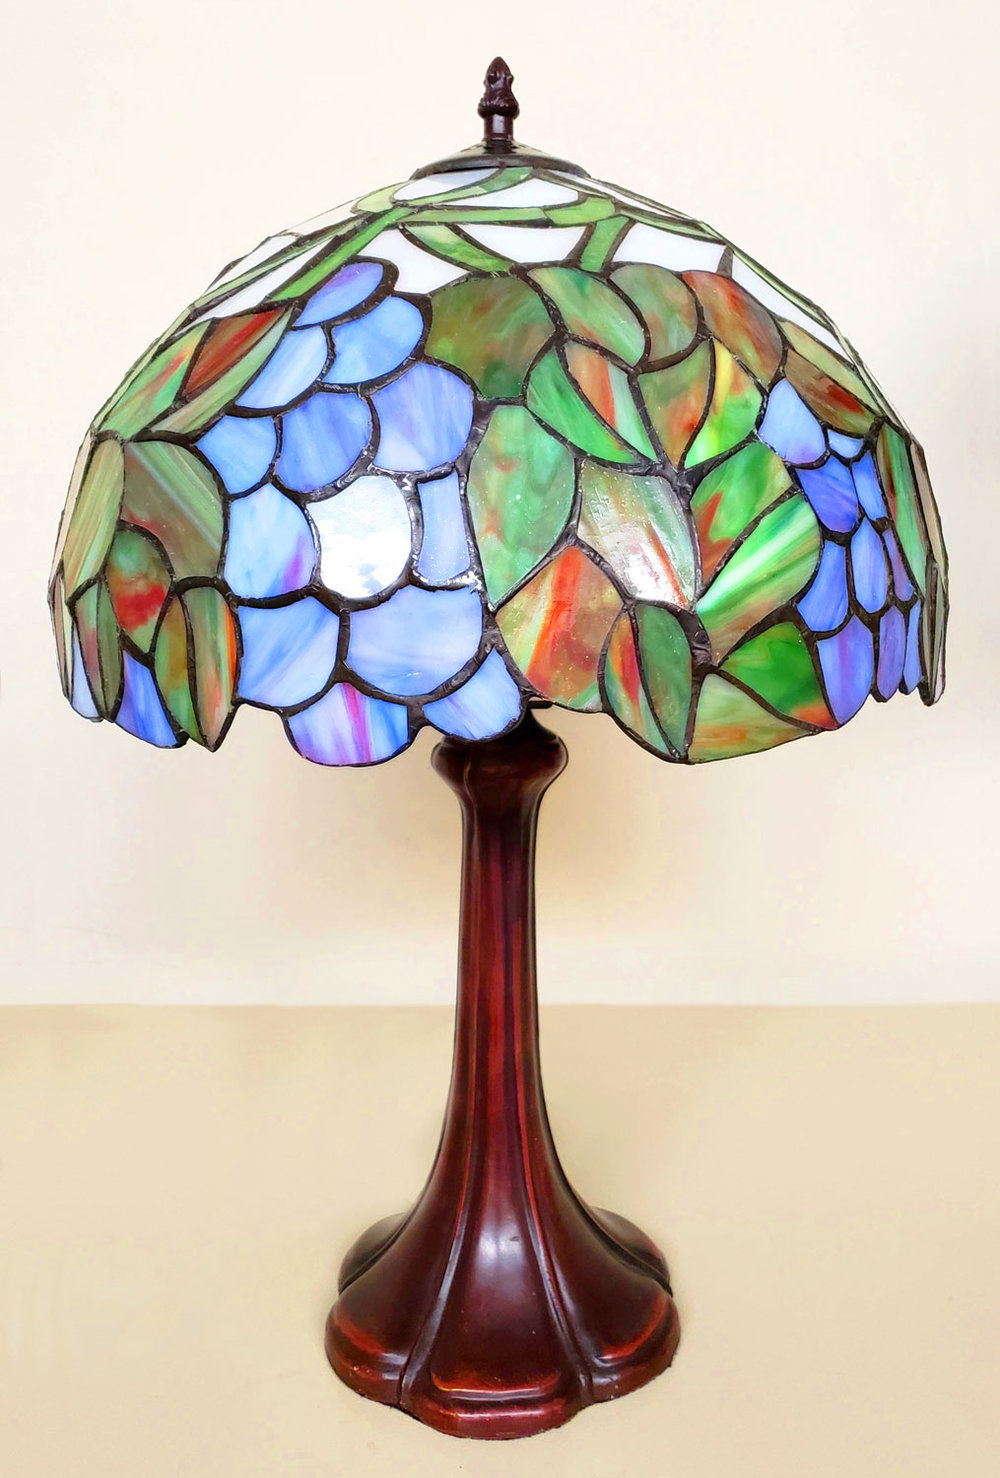 Stained glass lamps add character to any room.